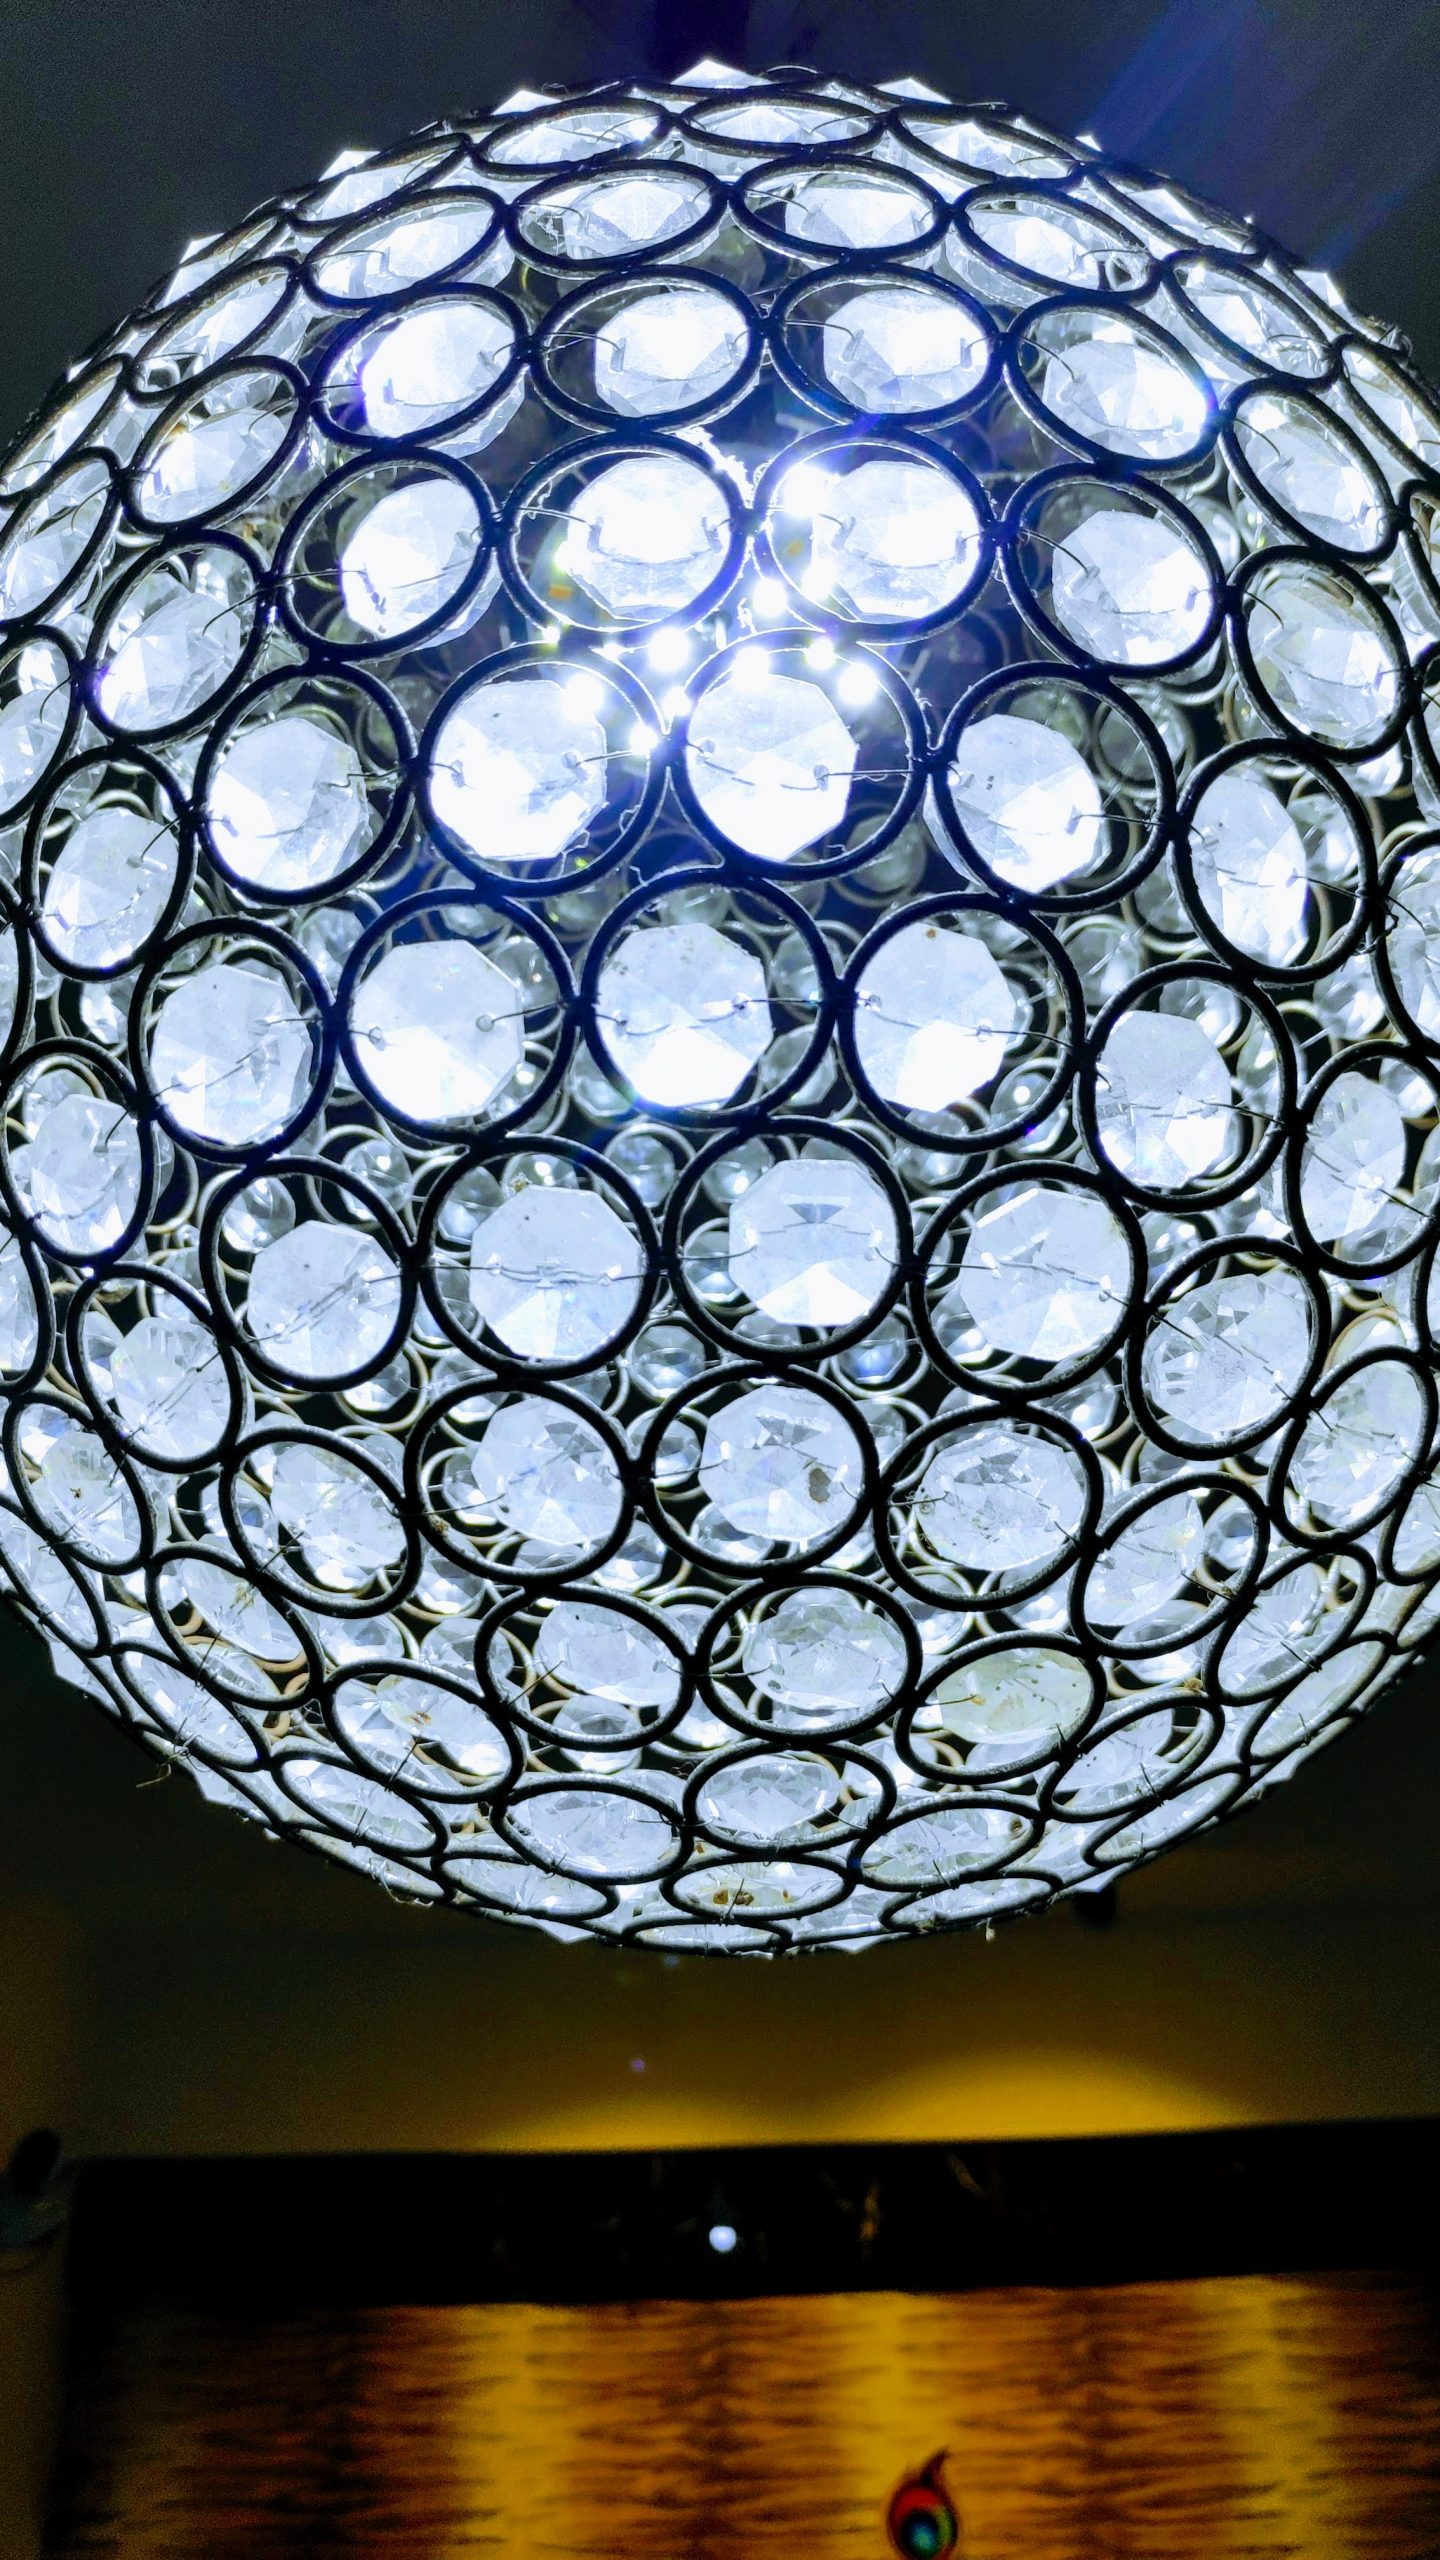 Lights in a sphere